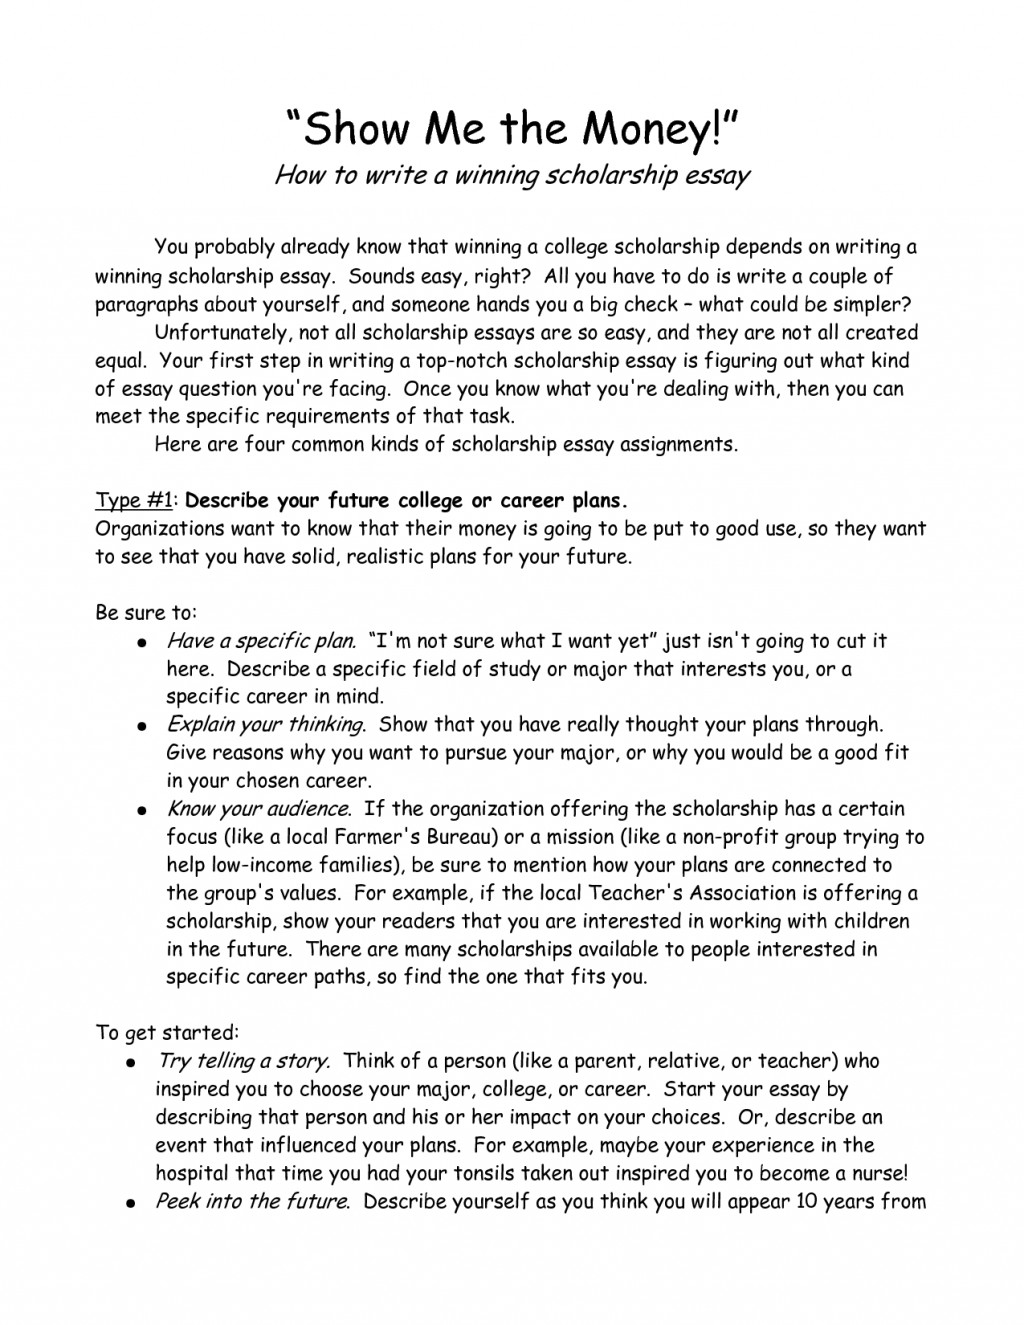 001 Scholarship Essays Essay Unusual Topics 2017 Format Prompts Large